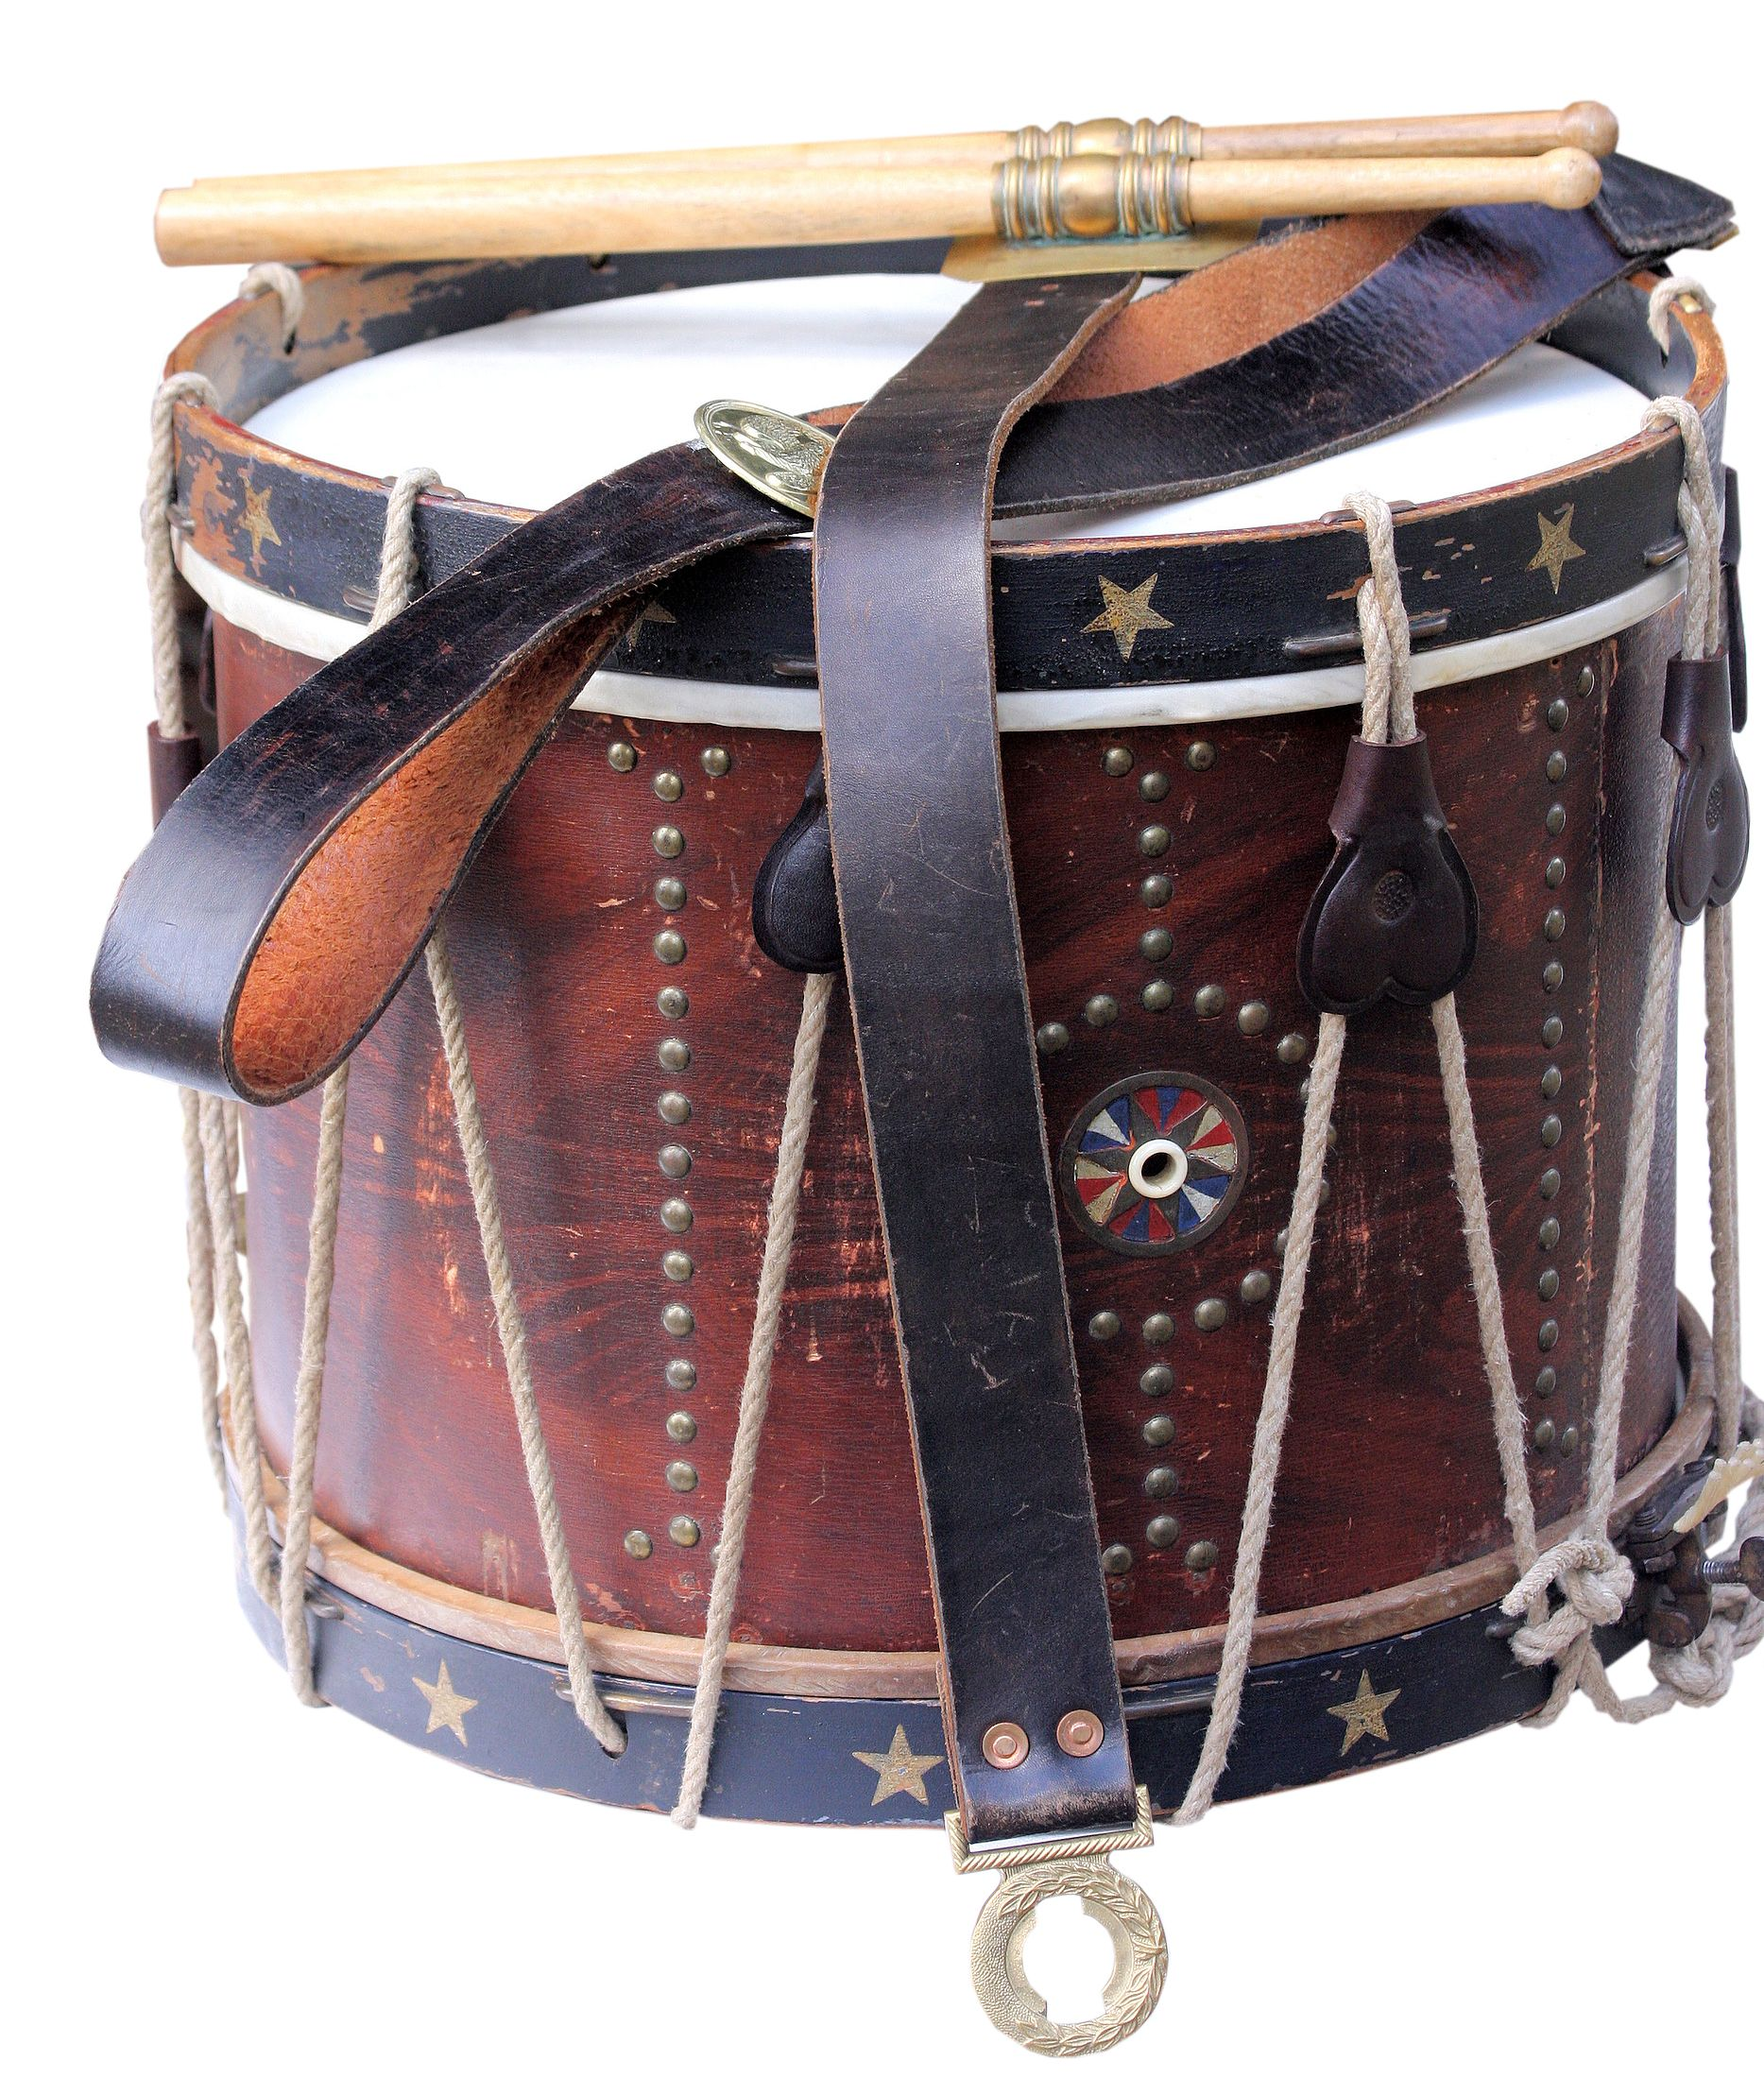 Drummer boys played important roles in the Civil War, and ...